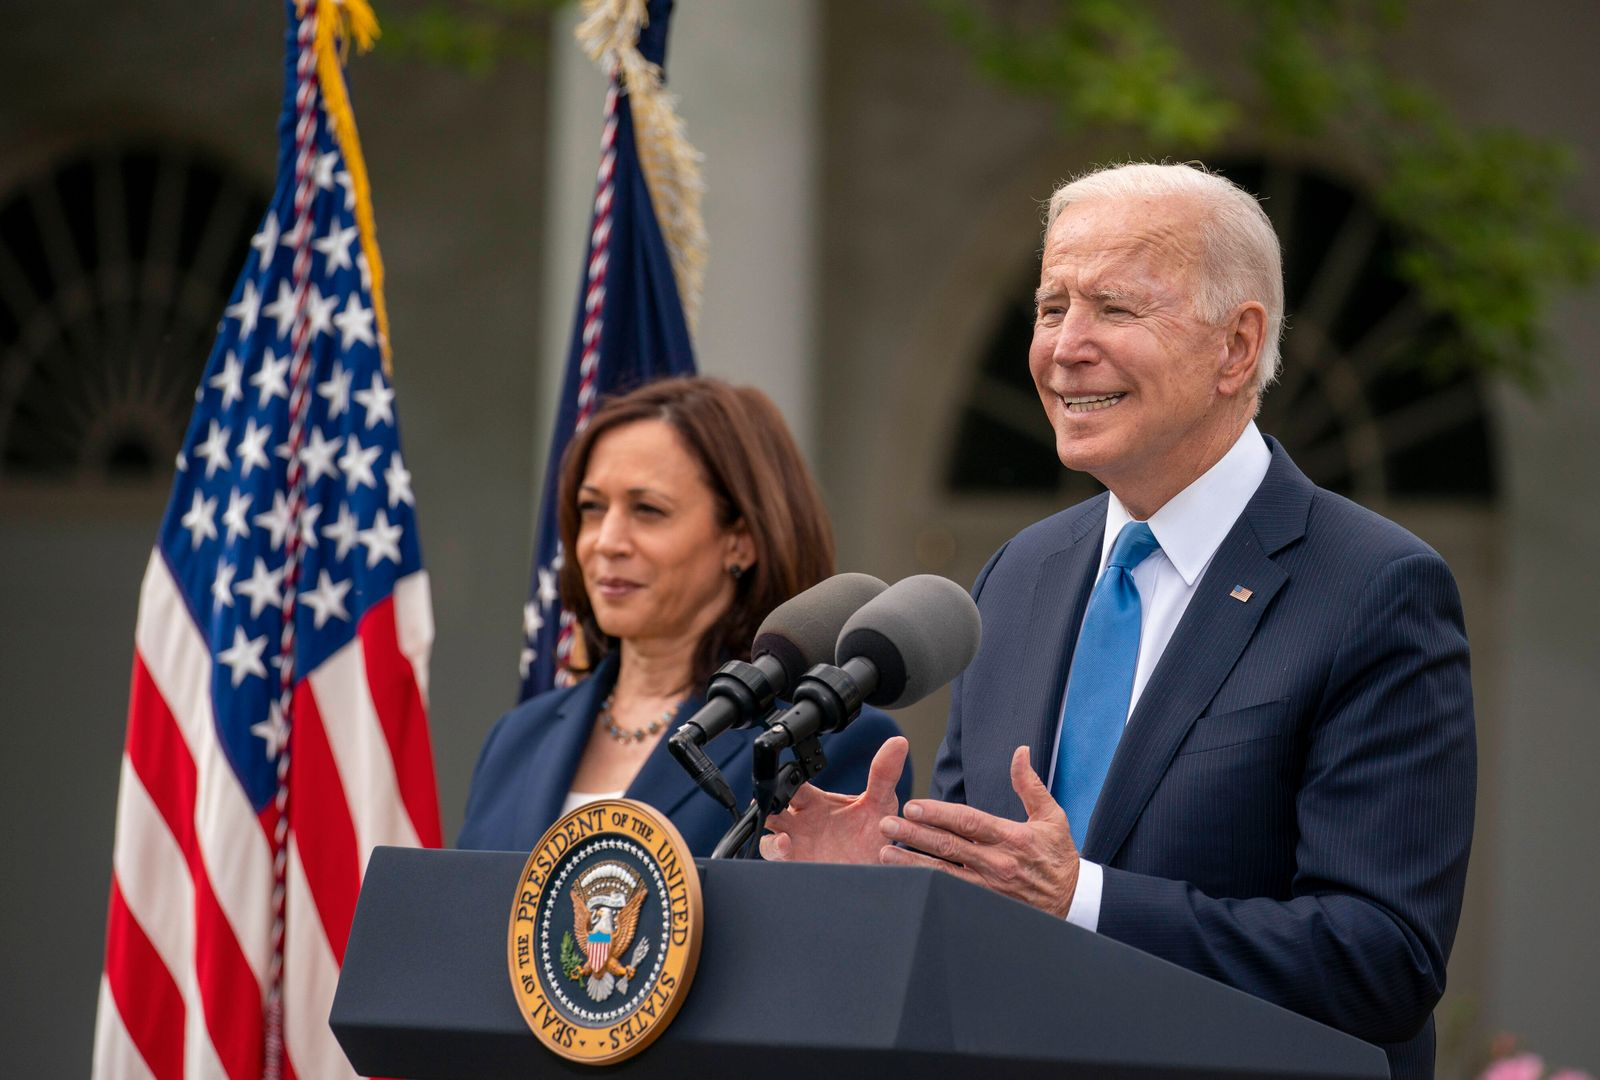 May 13, 2021, Washington, District of Columbia, USA: United States President Joe Biden gives remarks on the new Covid-1